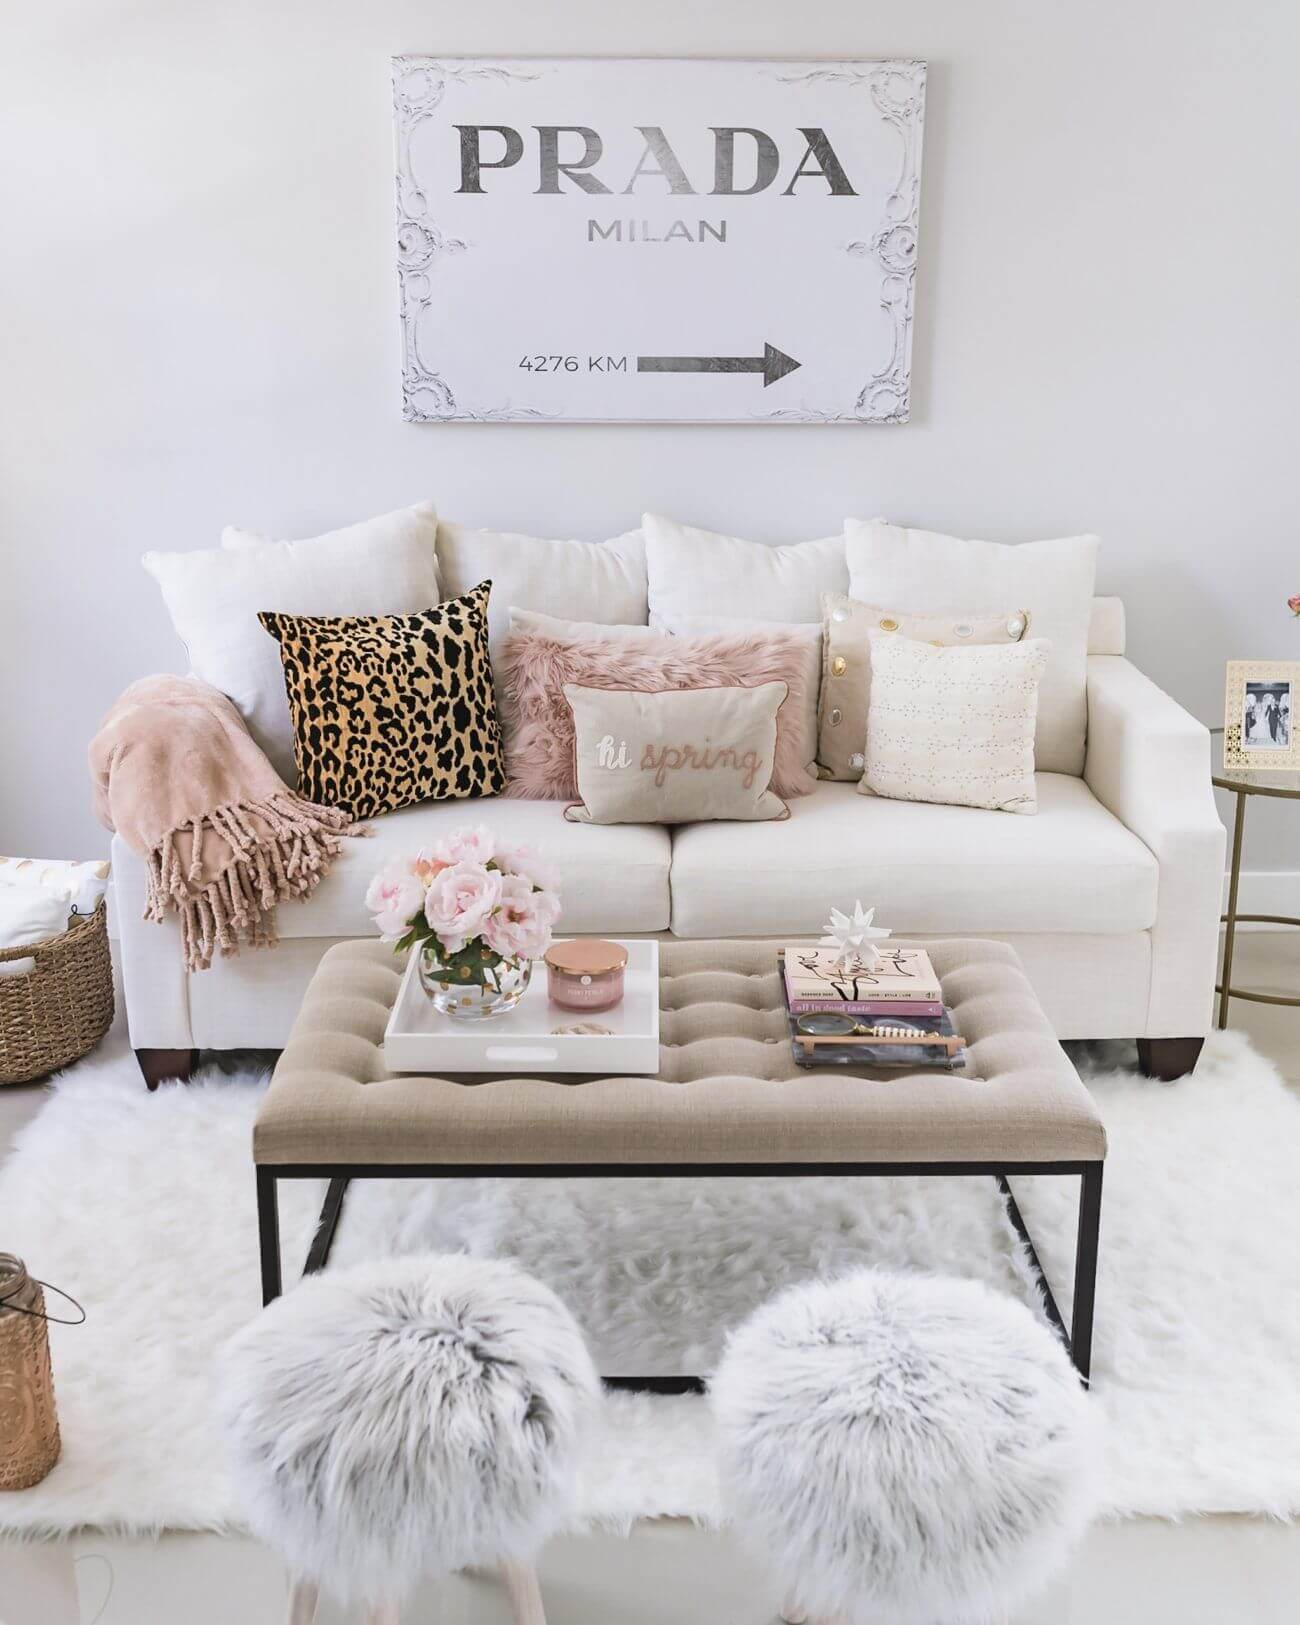 Light and Airy Color Scheme with Textures